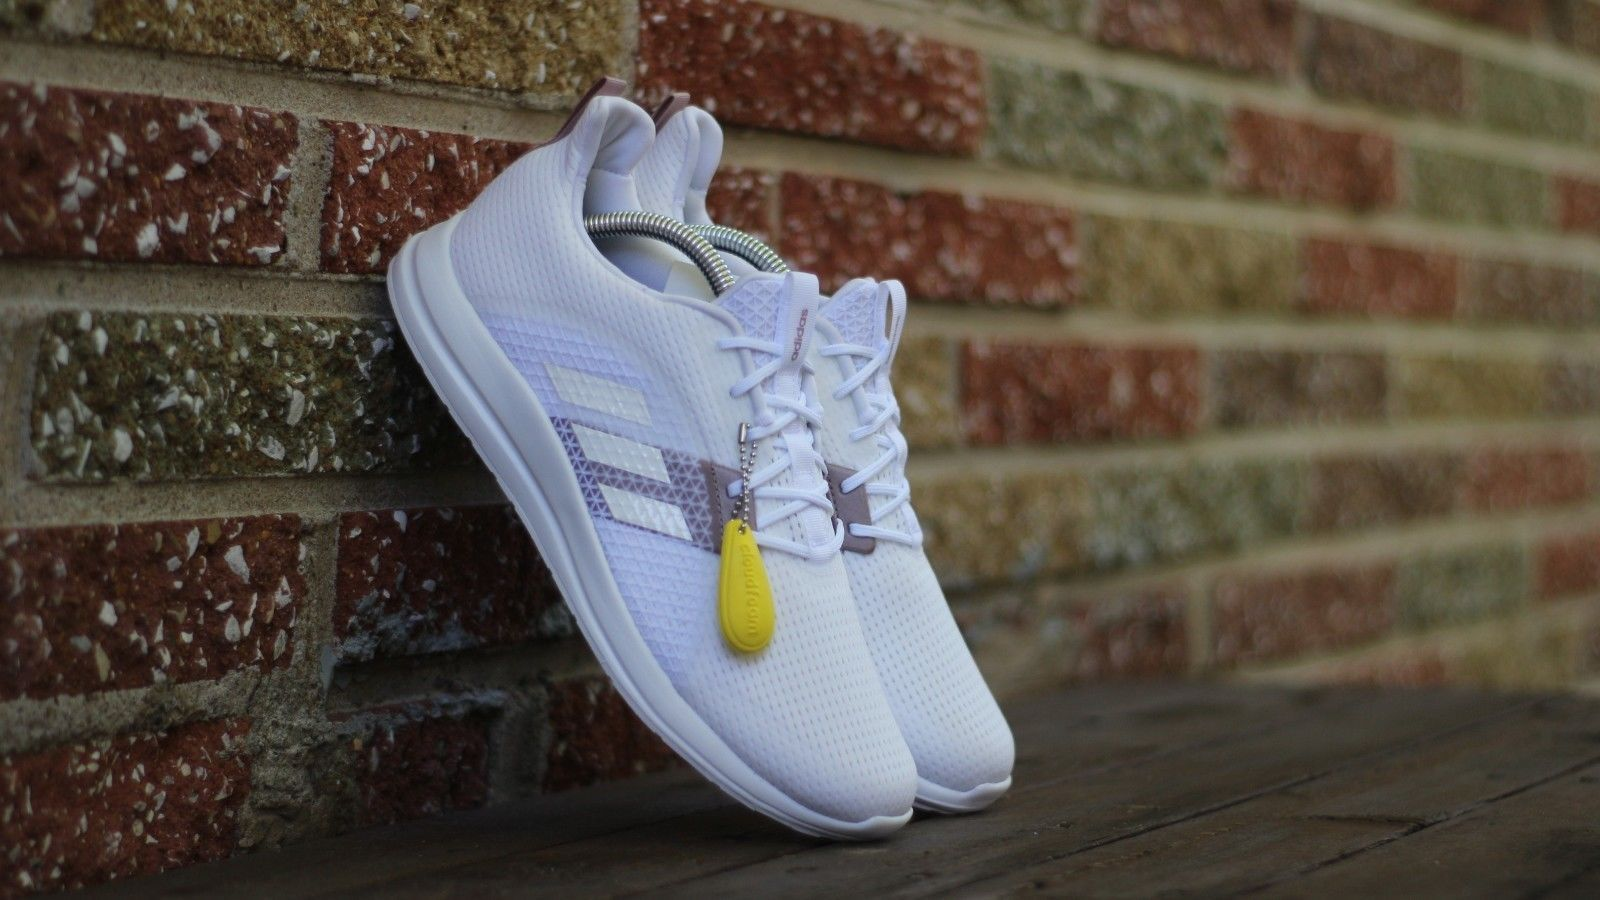 57. 57. Previous. Adidas Originals Women s Size 10 Element V Running Shoe  CM7298 White · Adidas ... 620127021